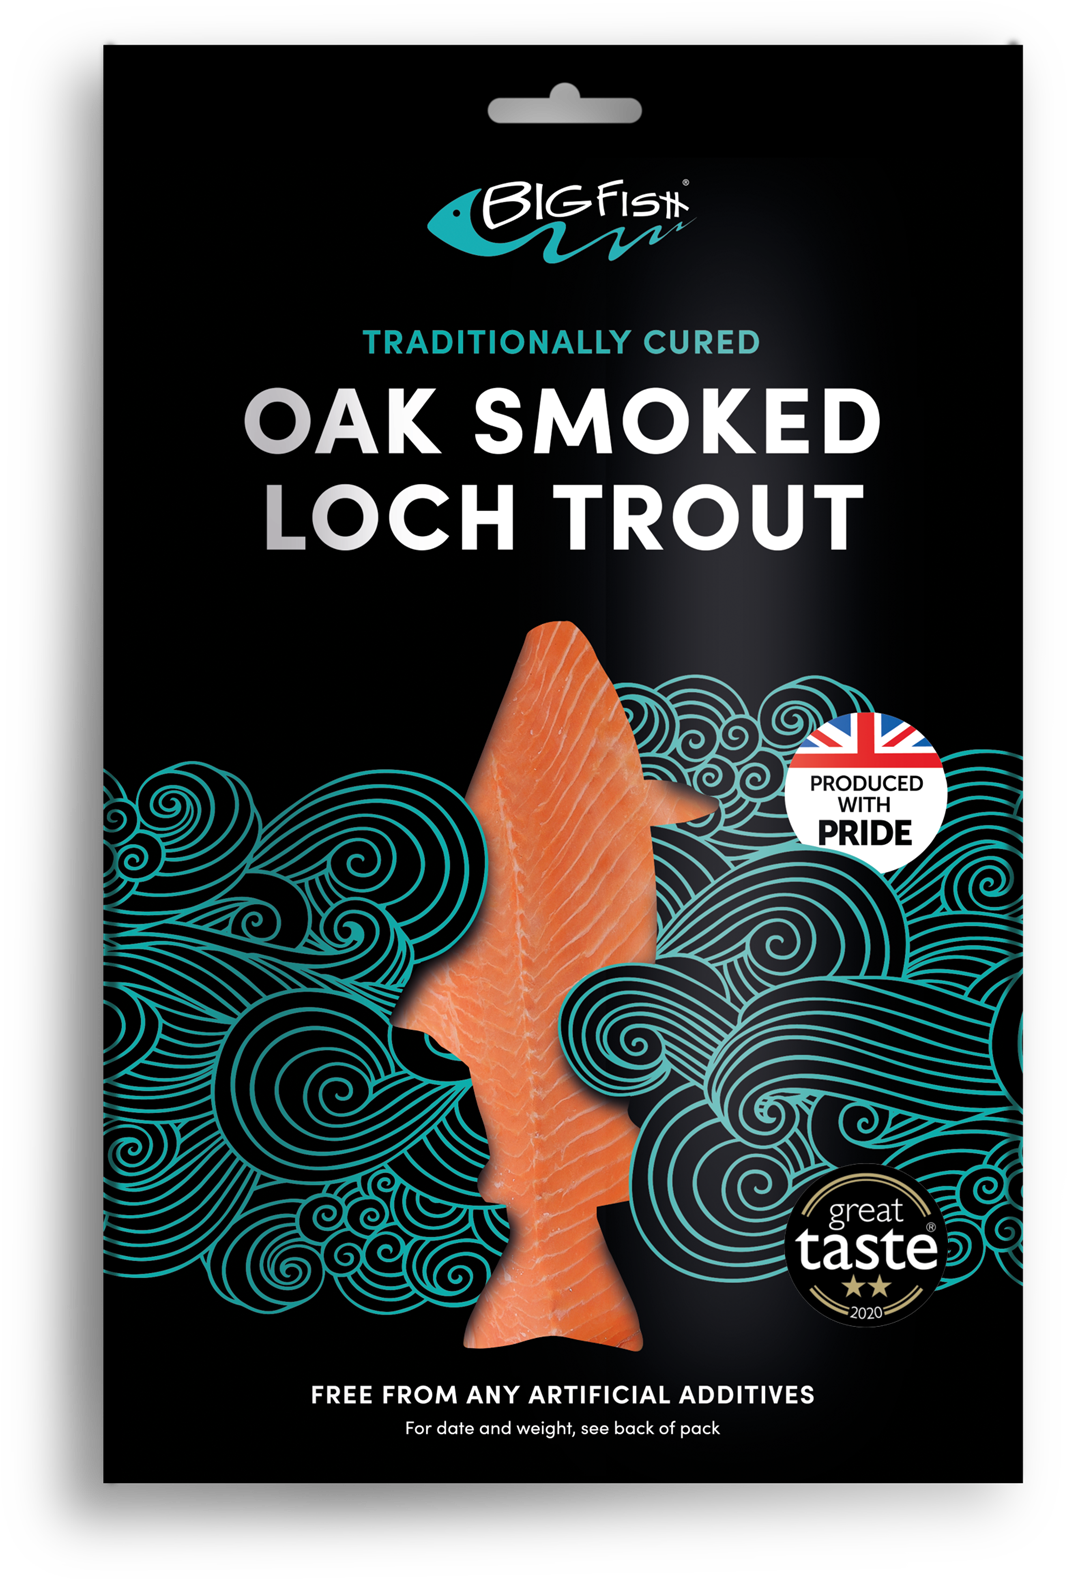 https://www.bigfishbrand.co.uk/assets/images/products/trout_with_great_taste_2_star.png